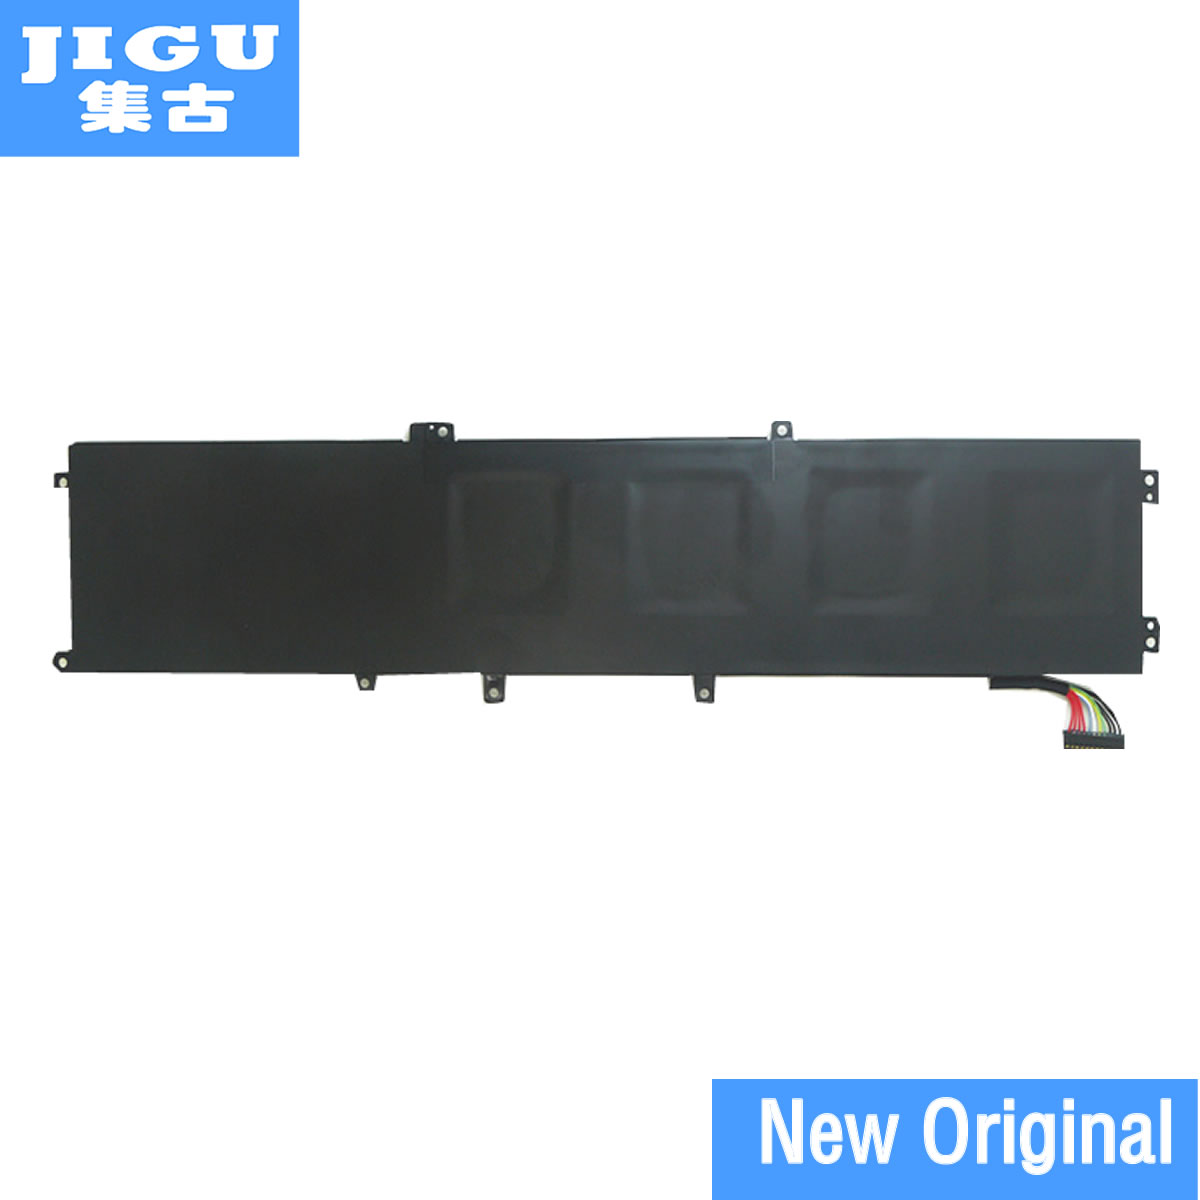 JIGU Original laptop Battery 1P6KD 4GVGH RRCGW FOR DELL for Precision 5510 XPS 15 9550 11 4v 84wh new original laptop battery for dell xps 15 9550 d1828t 1p6kd t453x 4gvgh precision 5510 xps15 9550 xps 15